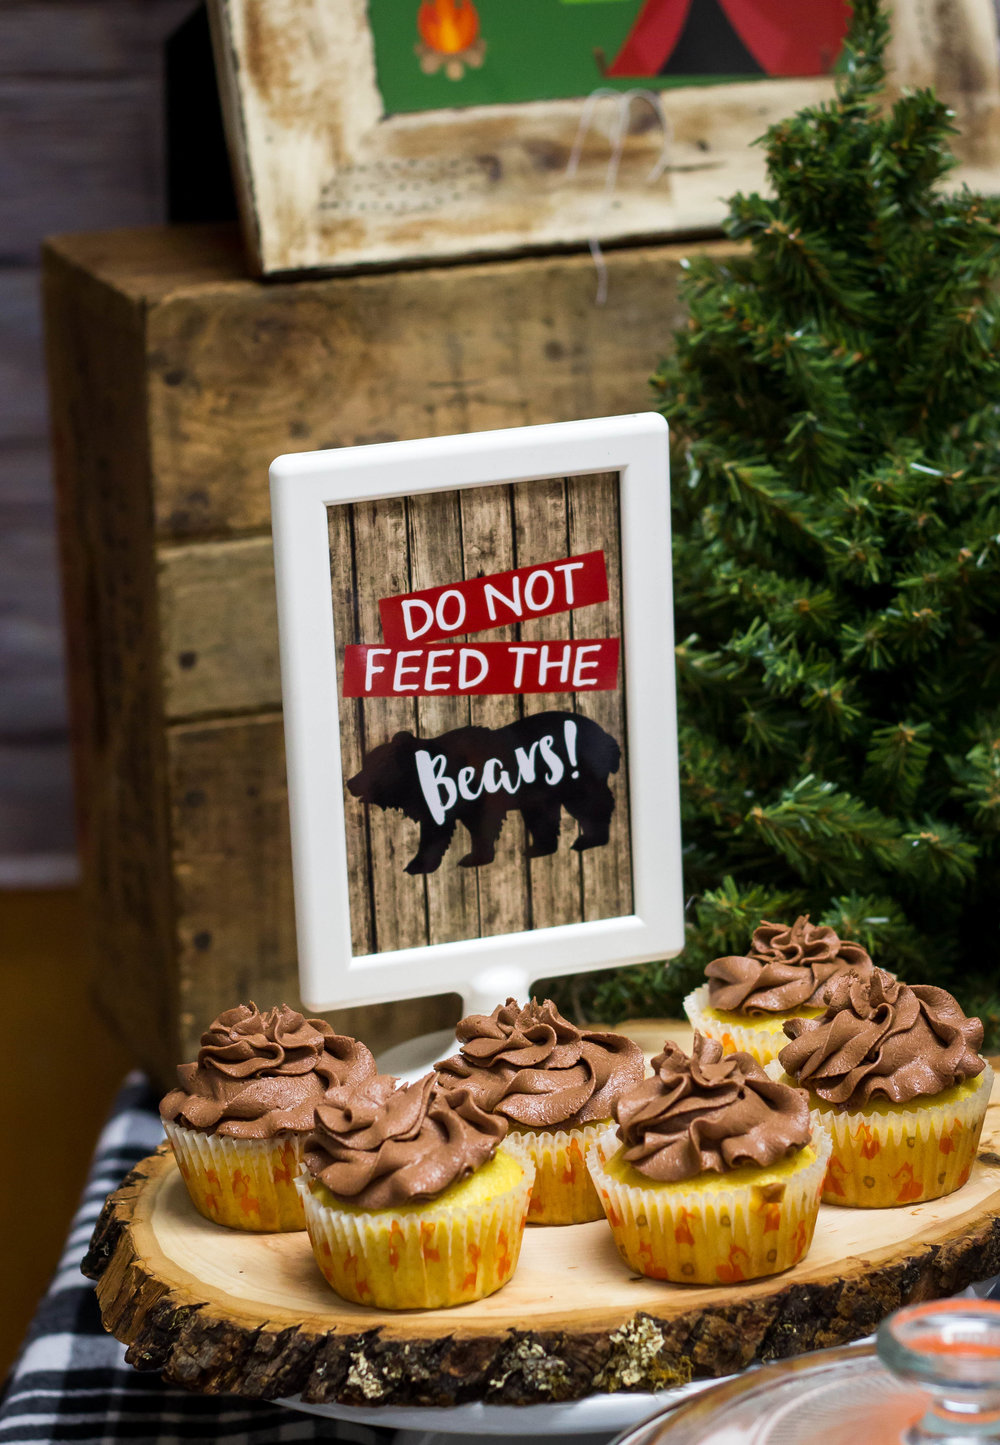 Do not feed the bears sign by MKKM Designs